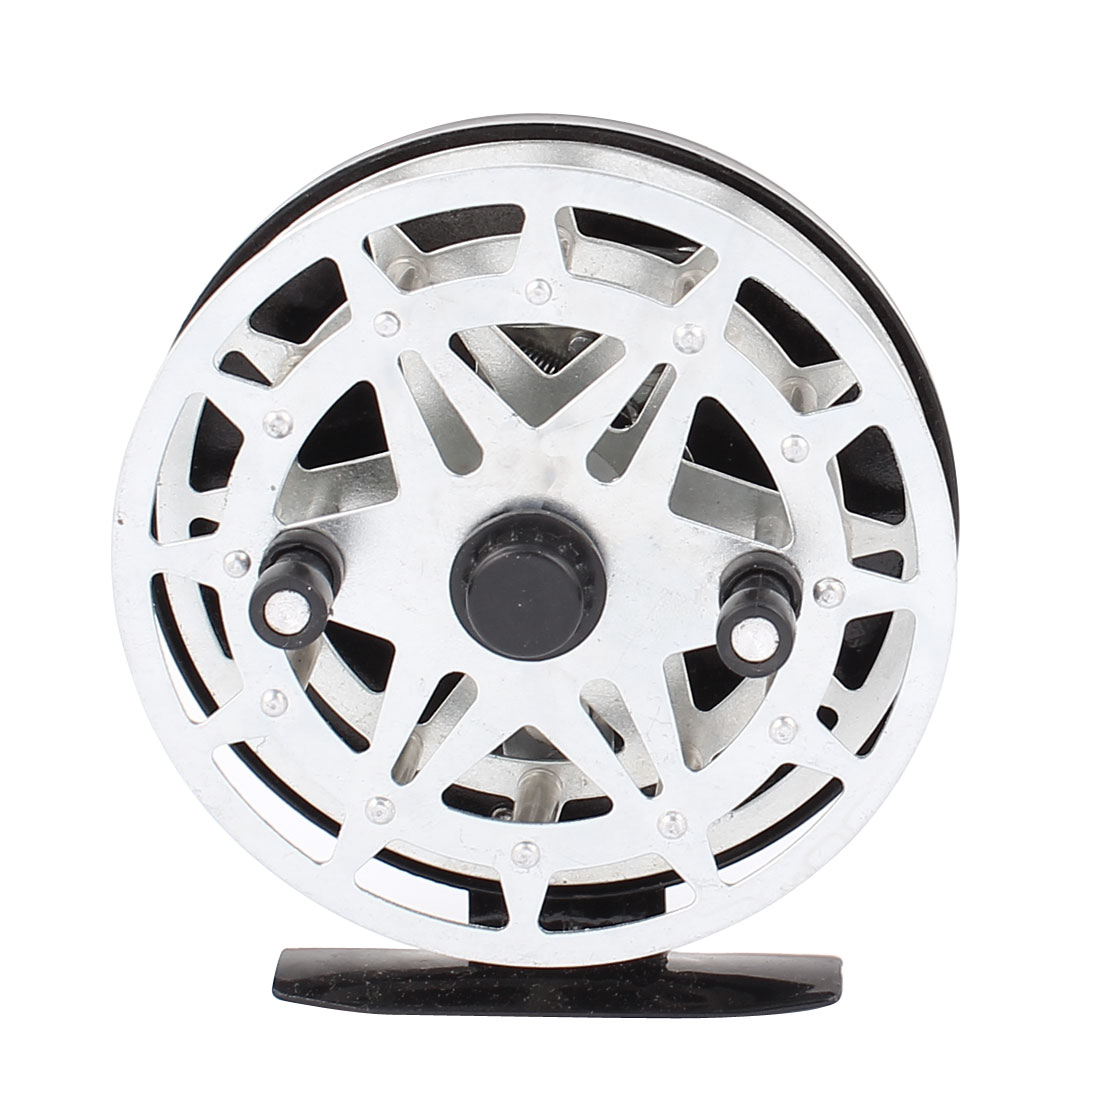 Fish Metal Fishing Line Thread Winding Coiling Spare Spool Spinning Winder Reel Black Silver Tone